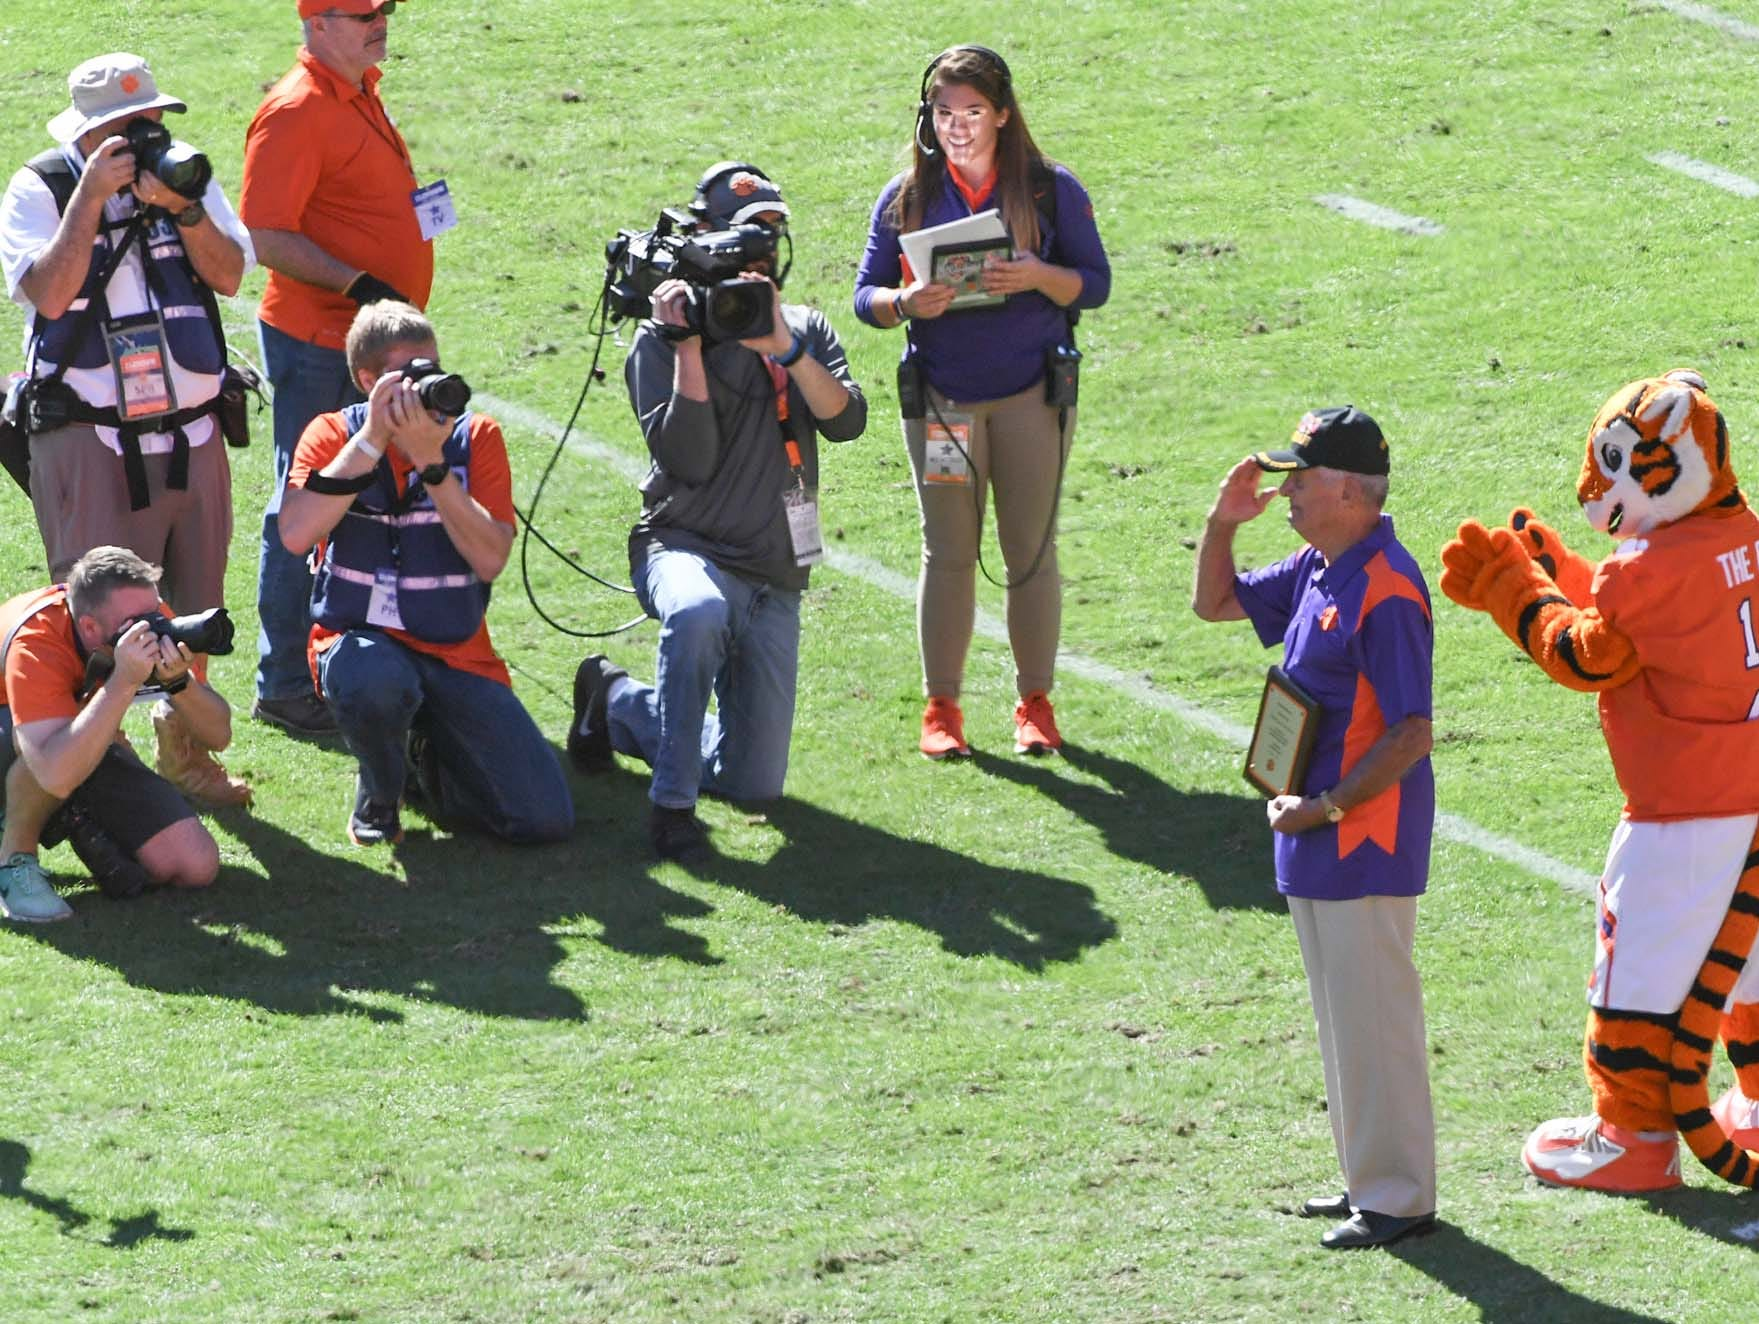 Col. Matt Wood, who served in the U.S. Army in the Korean and Vietnam Wars, earning a Purple Heart and Bronze Star, was honored during a break in the first quarter in Memorial Stadium on Saturday, November 3, 2018.